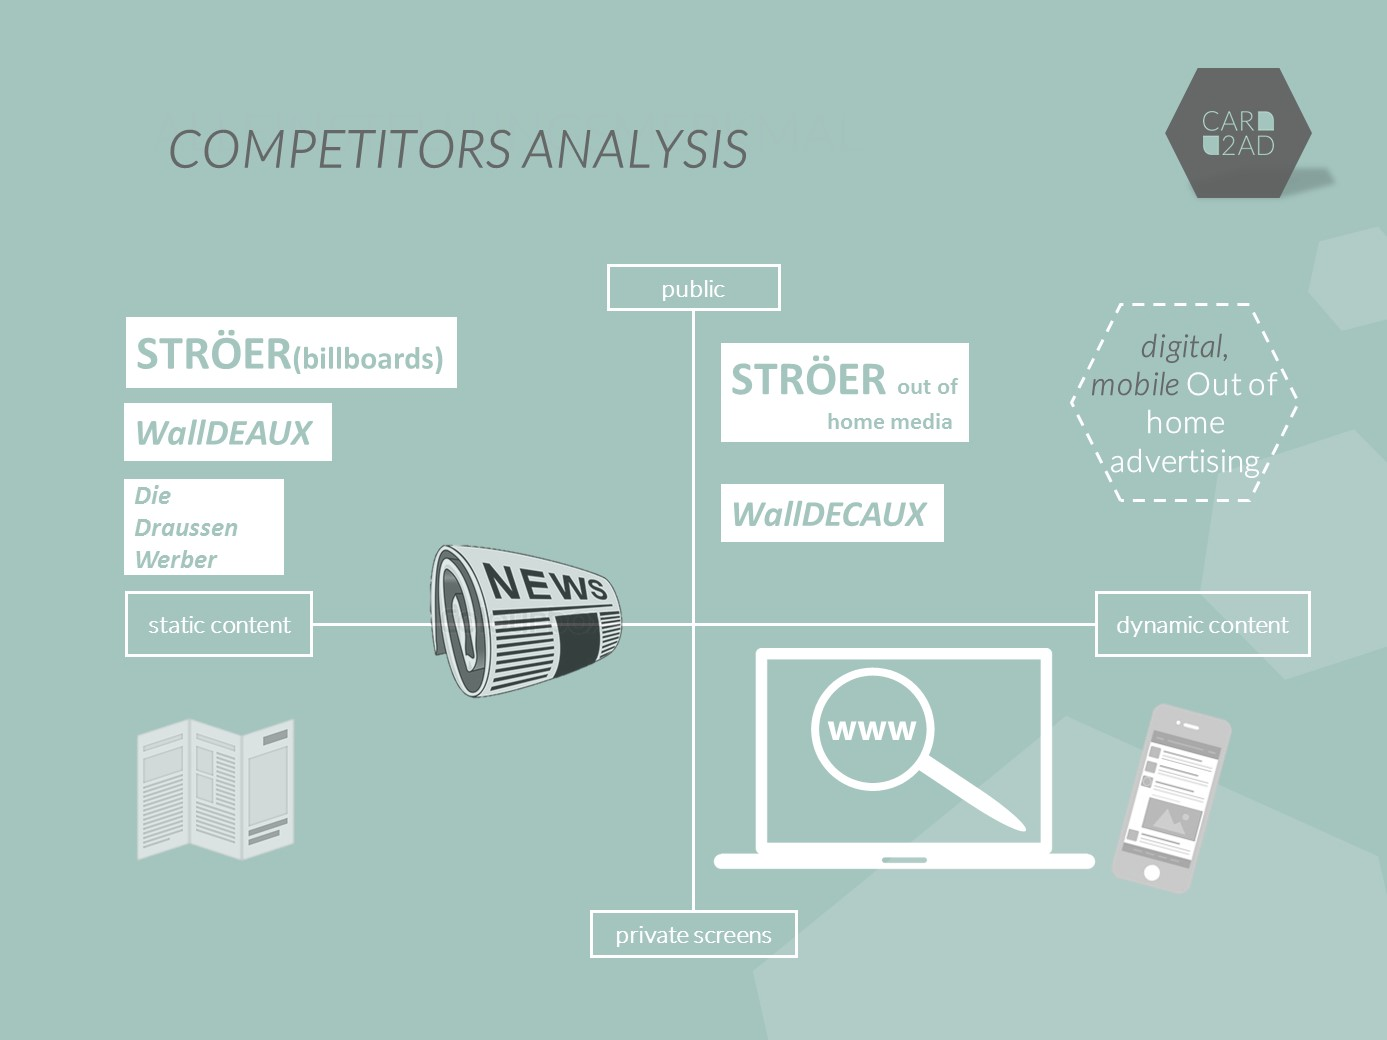 CAR2AD - Competitor analysis